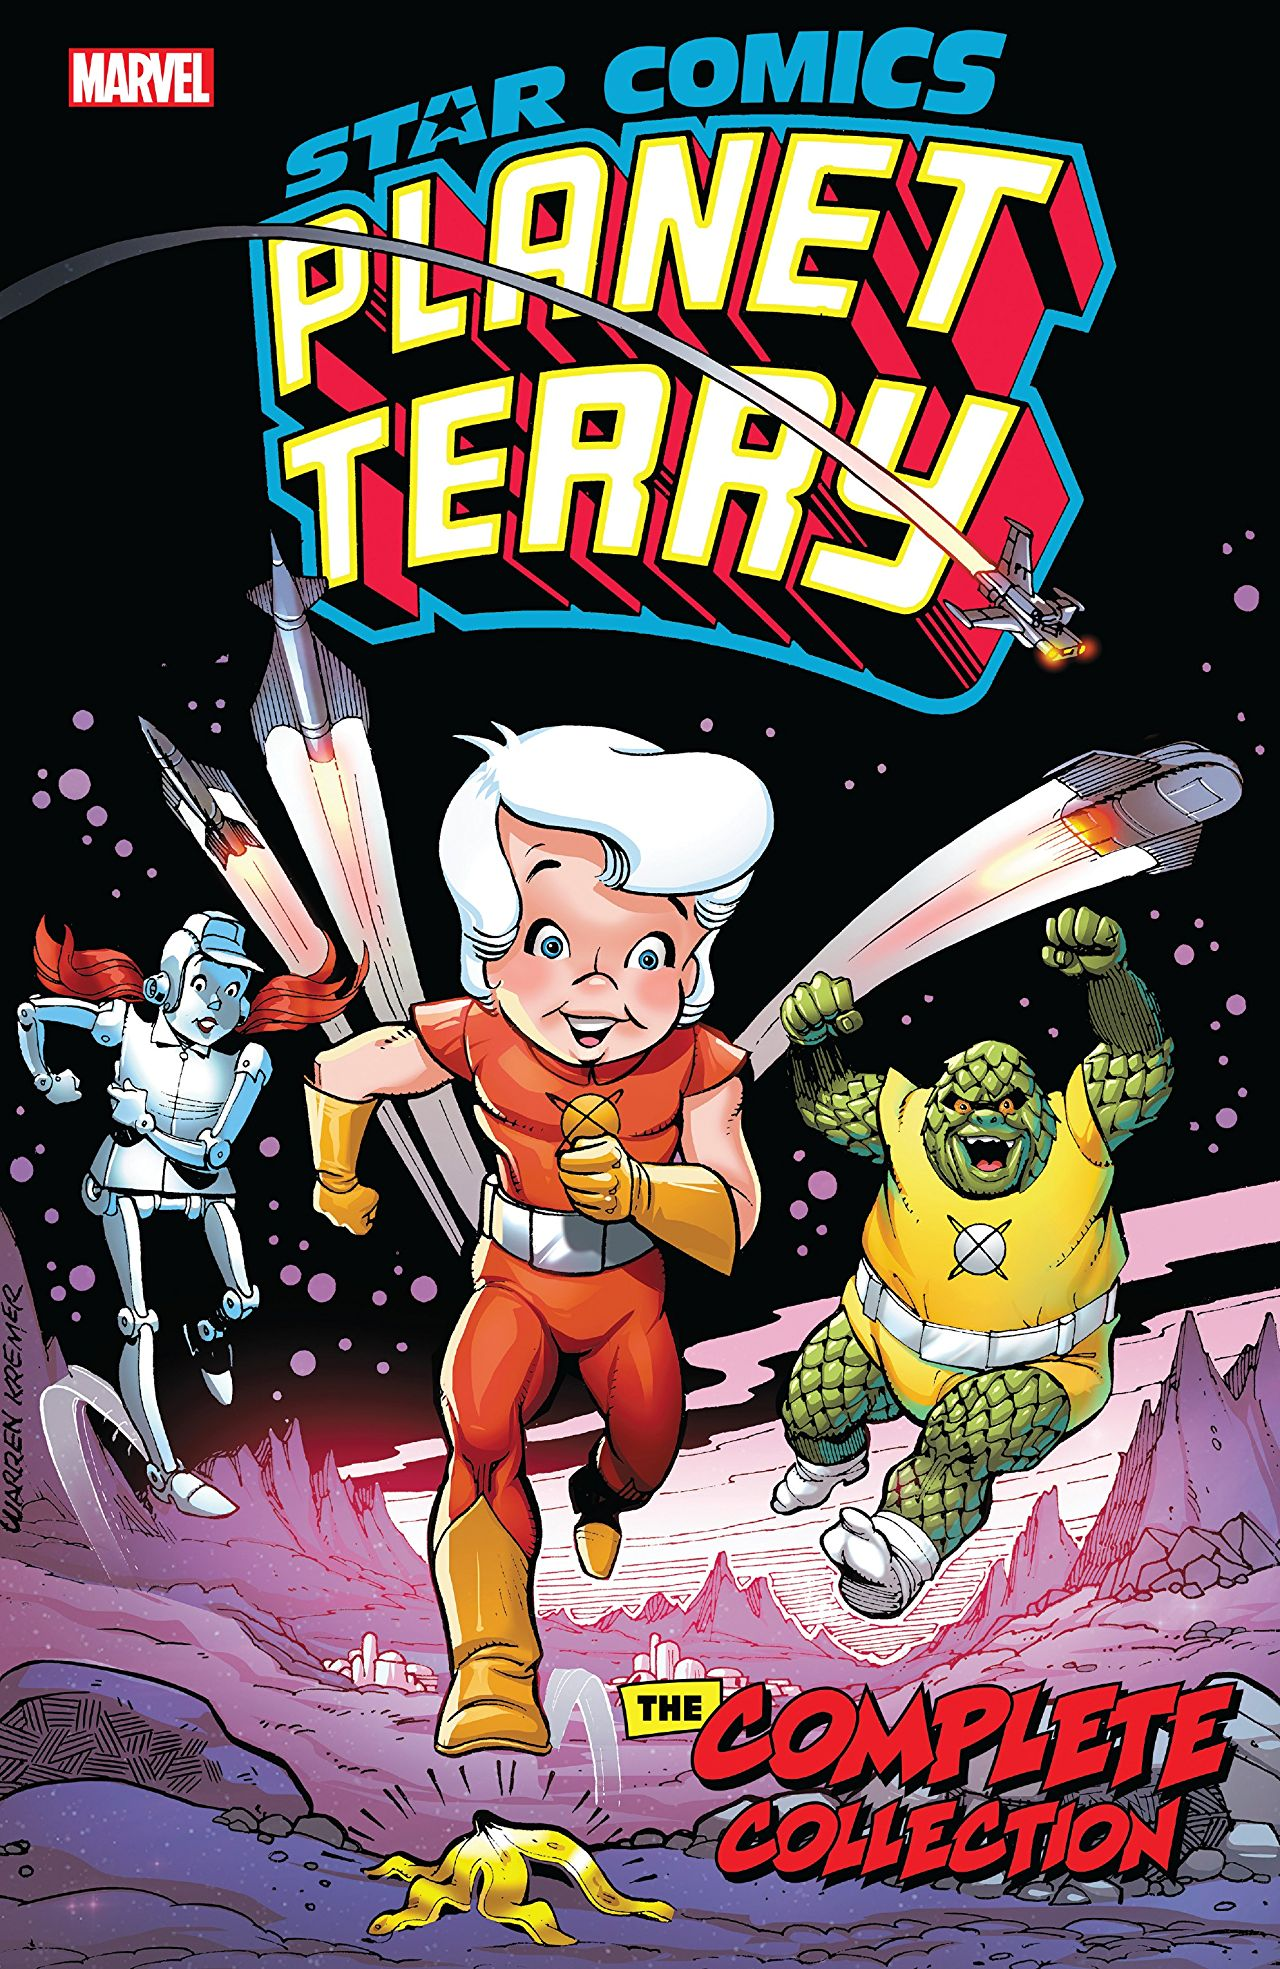 Star Comics: Planet Terry - The Complete Collection Vol 1 1